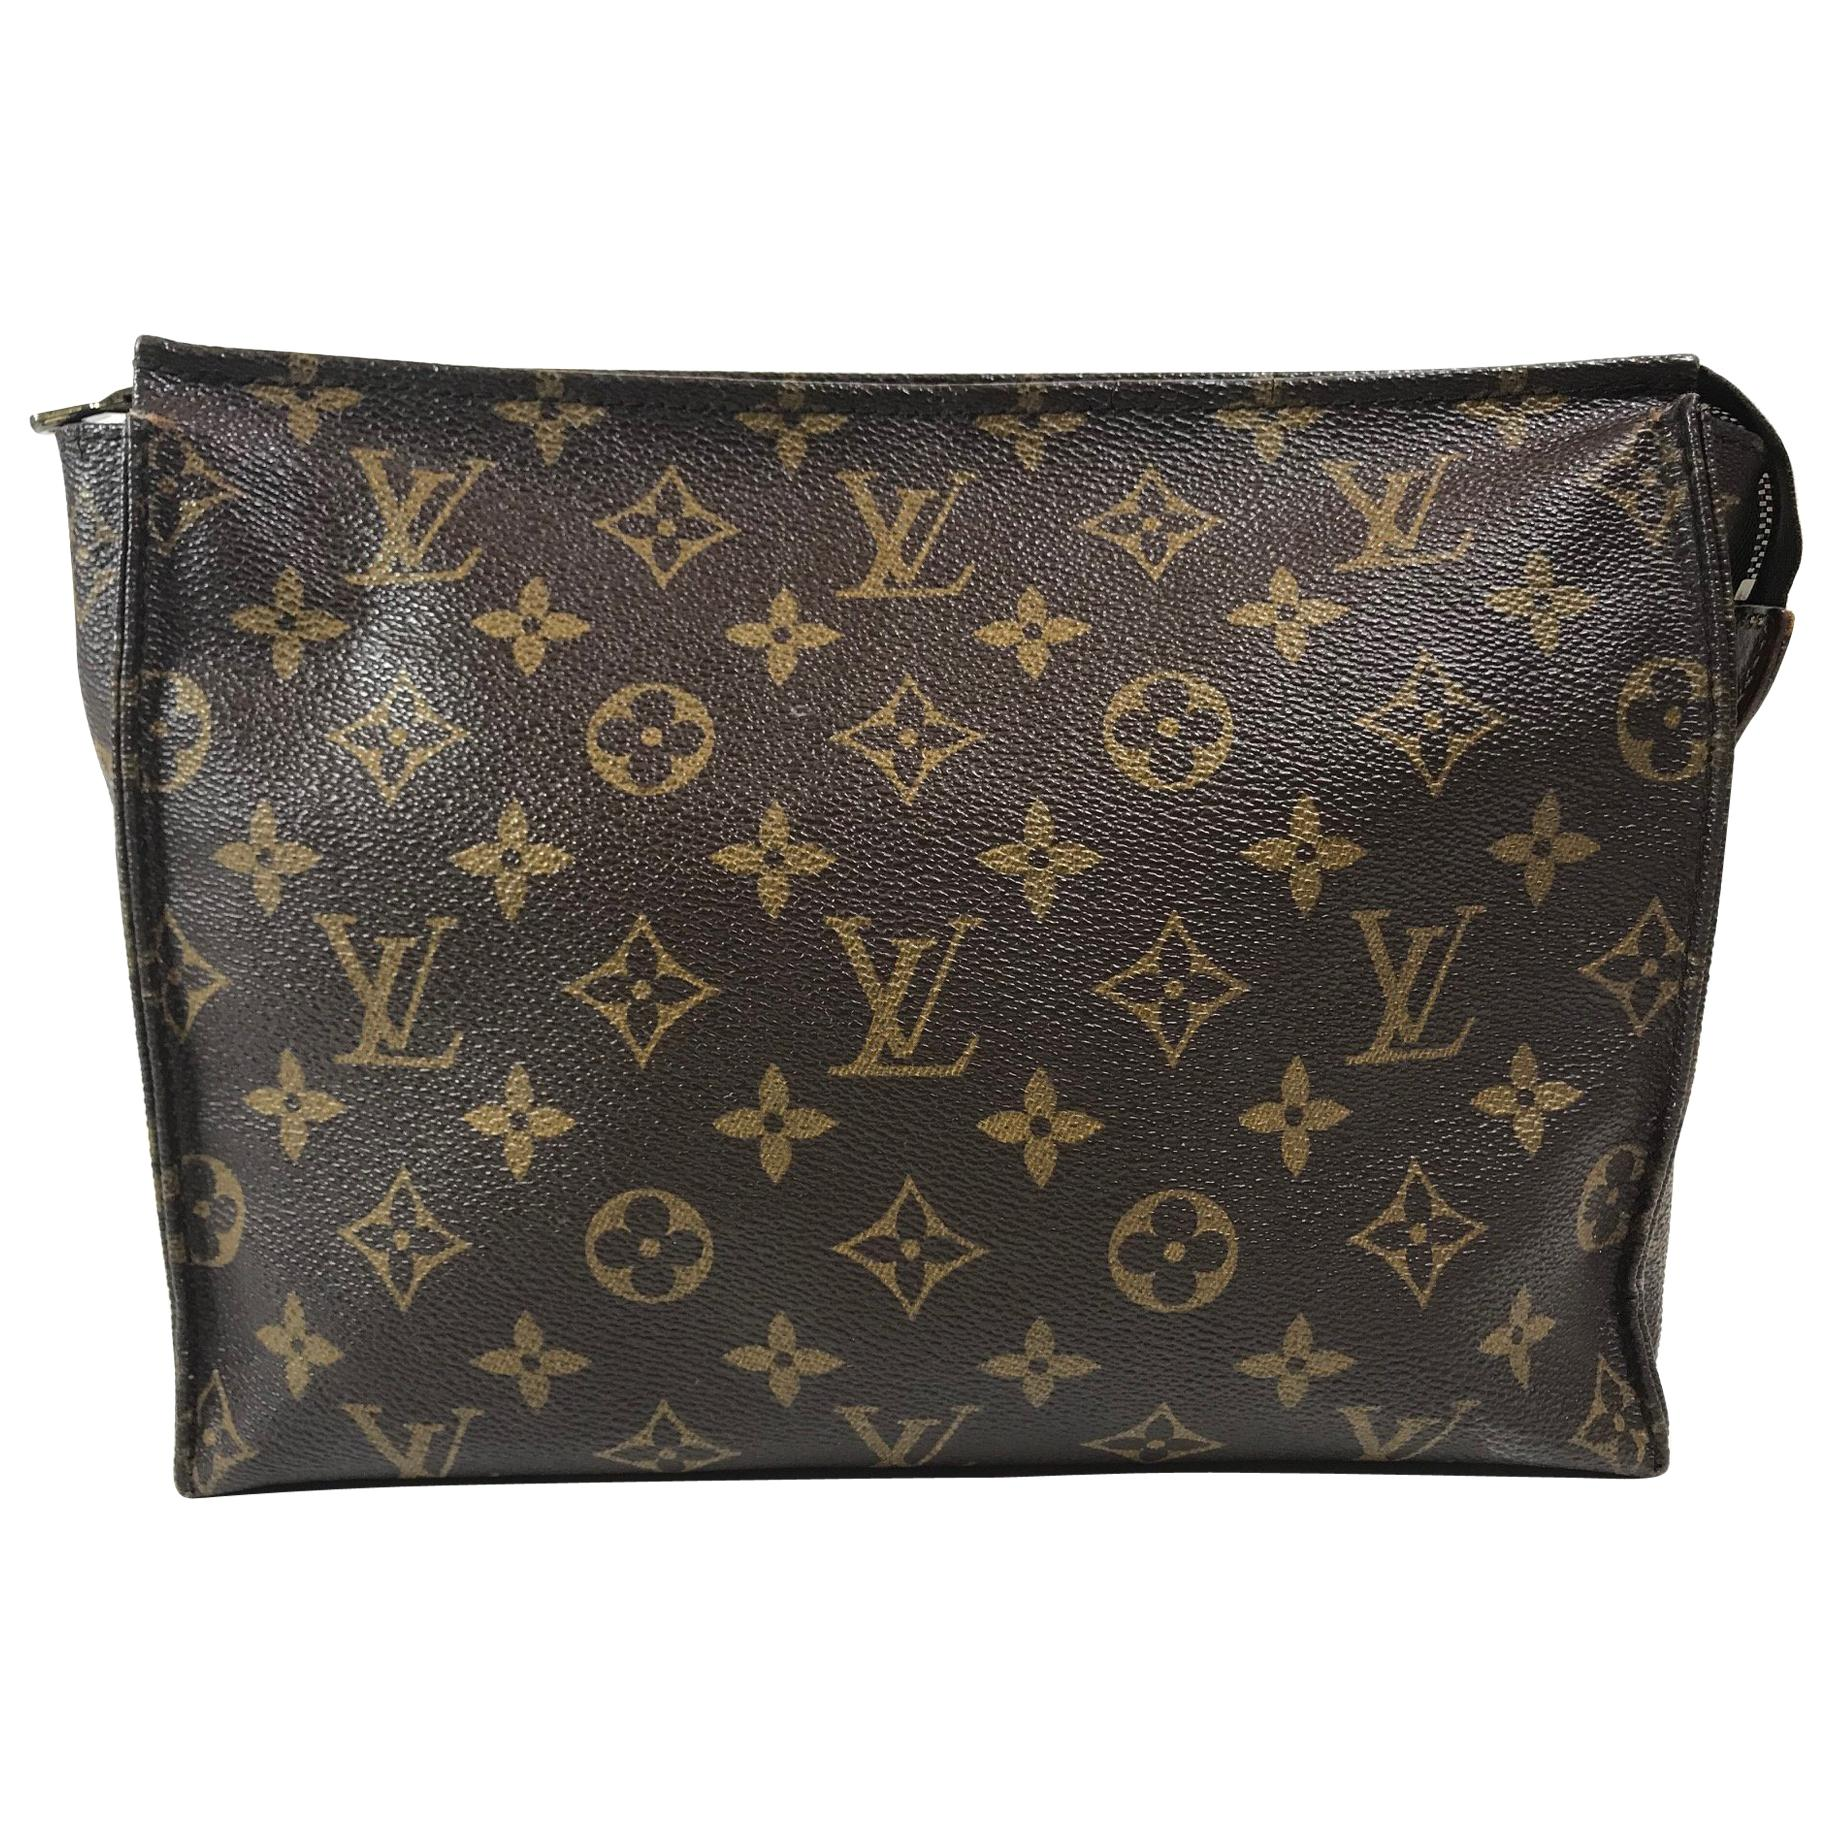 afcc77916008 Louis Vuitton Vintage Monogram Toiletry Pouch 26 For Sale at 1stdibs